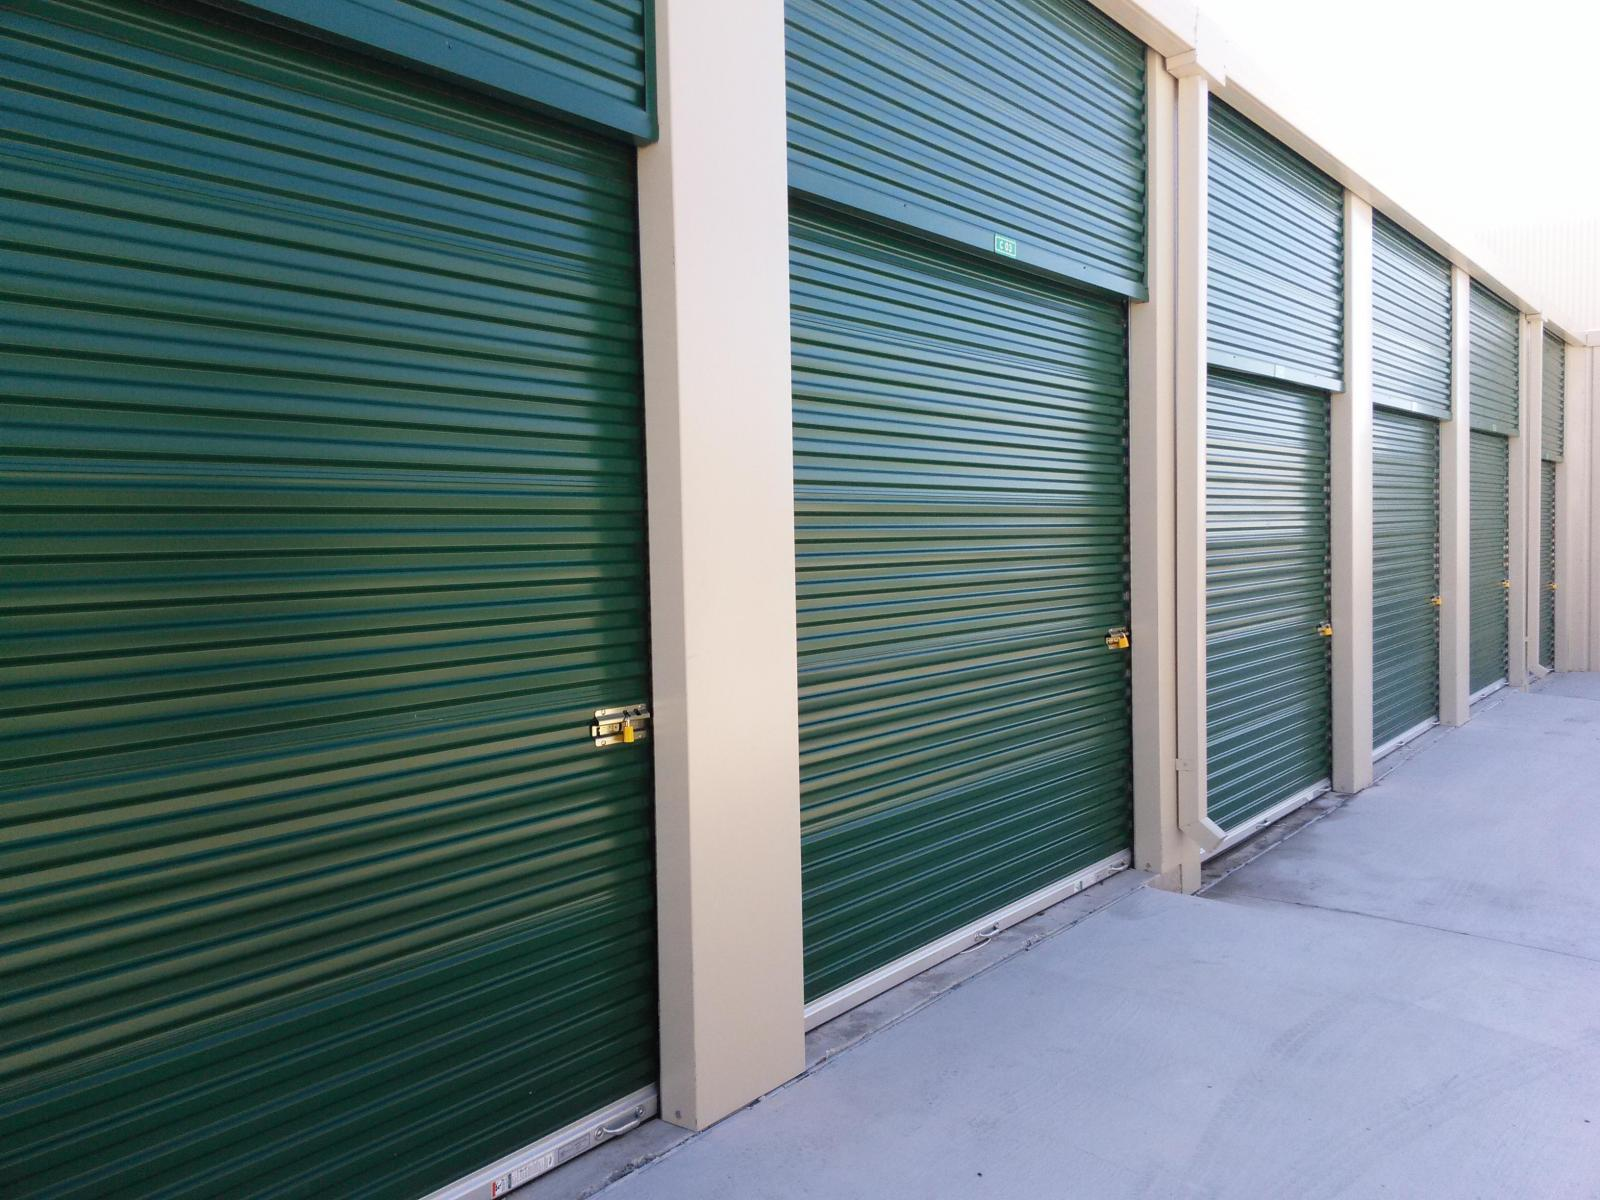 Drive up access is valuable for many commercial storage unit renters.